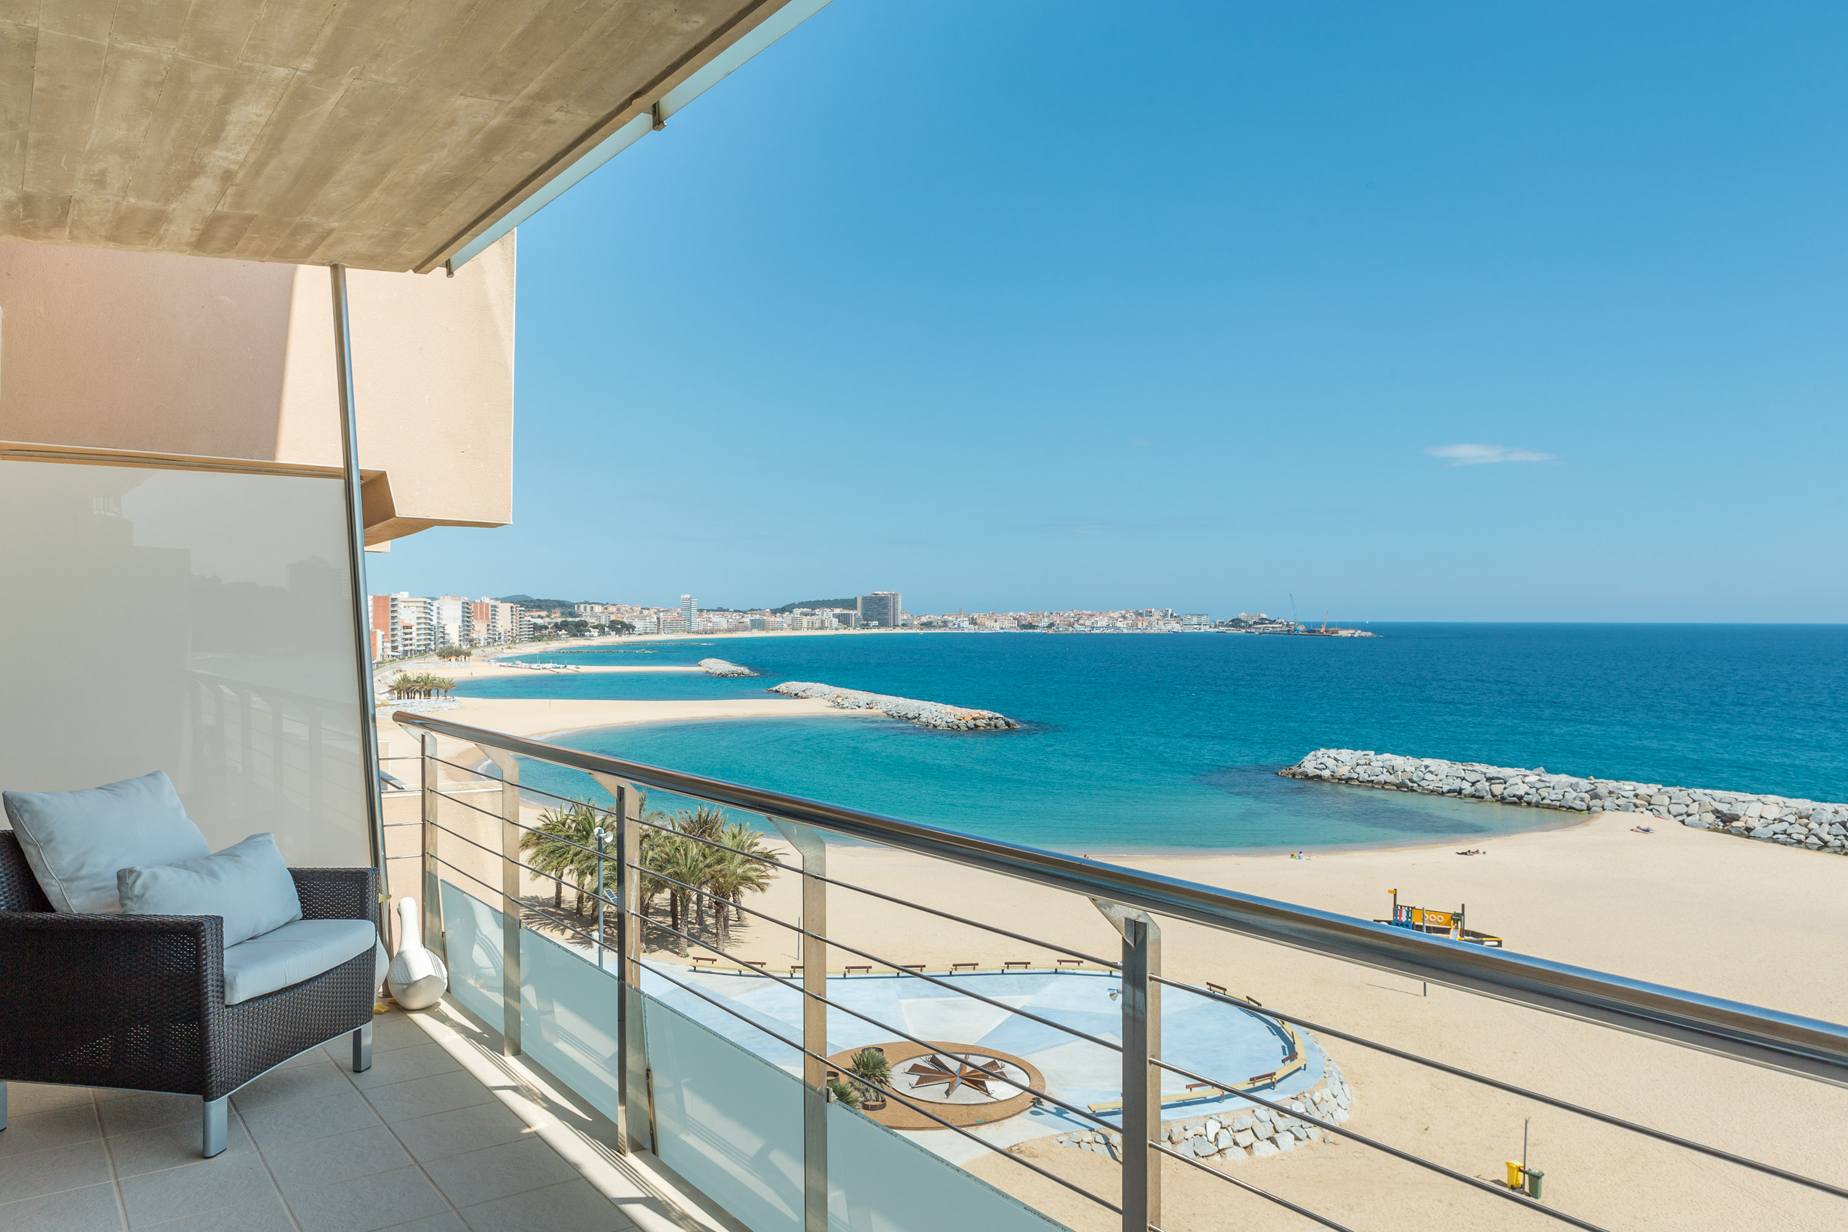 Apartment for Sale at Seafront apartment with stunning sea views Sant Antoni De Calonge, Costa Brava 17252 Spain